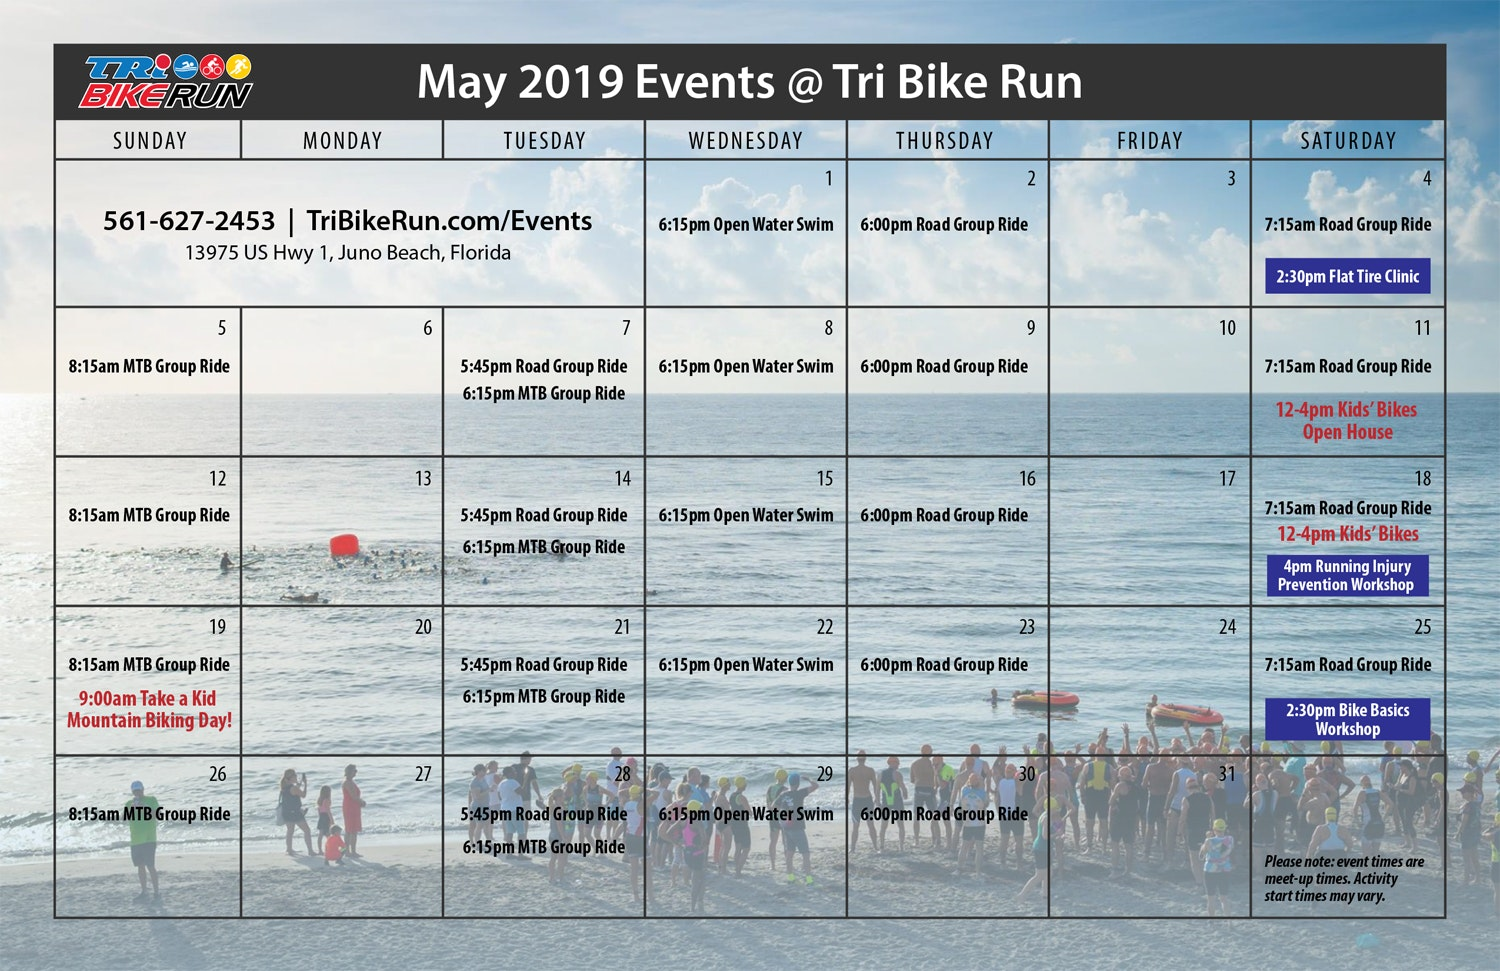 Join Tri Bike Run throughout the month of May for group rides, training opportunities, and info sessions!